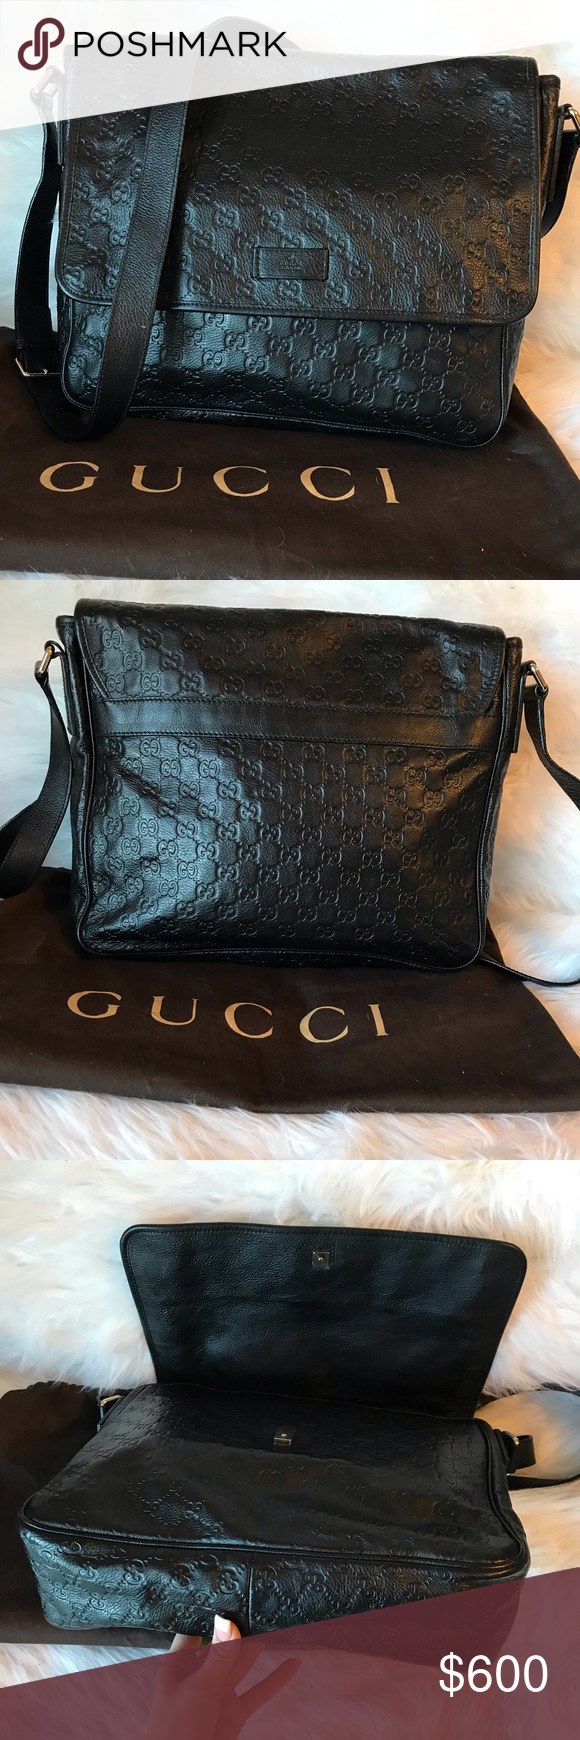 4812909b5541 Black Leather · Stylish · Authentic Gucci Guccissima Messenger Bag  Authentic Gucci Messenger Bag. This stylish messenger bag is finely